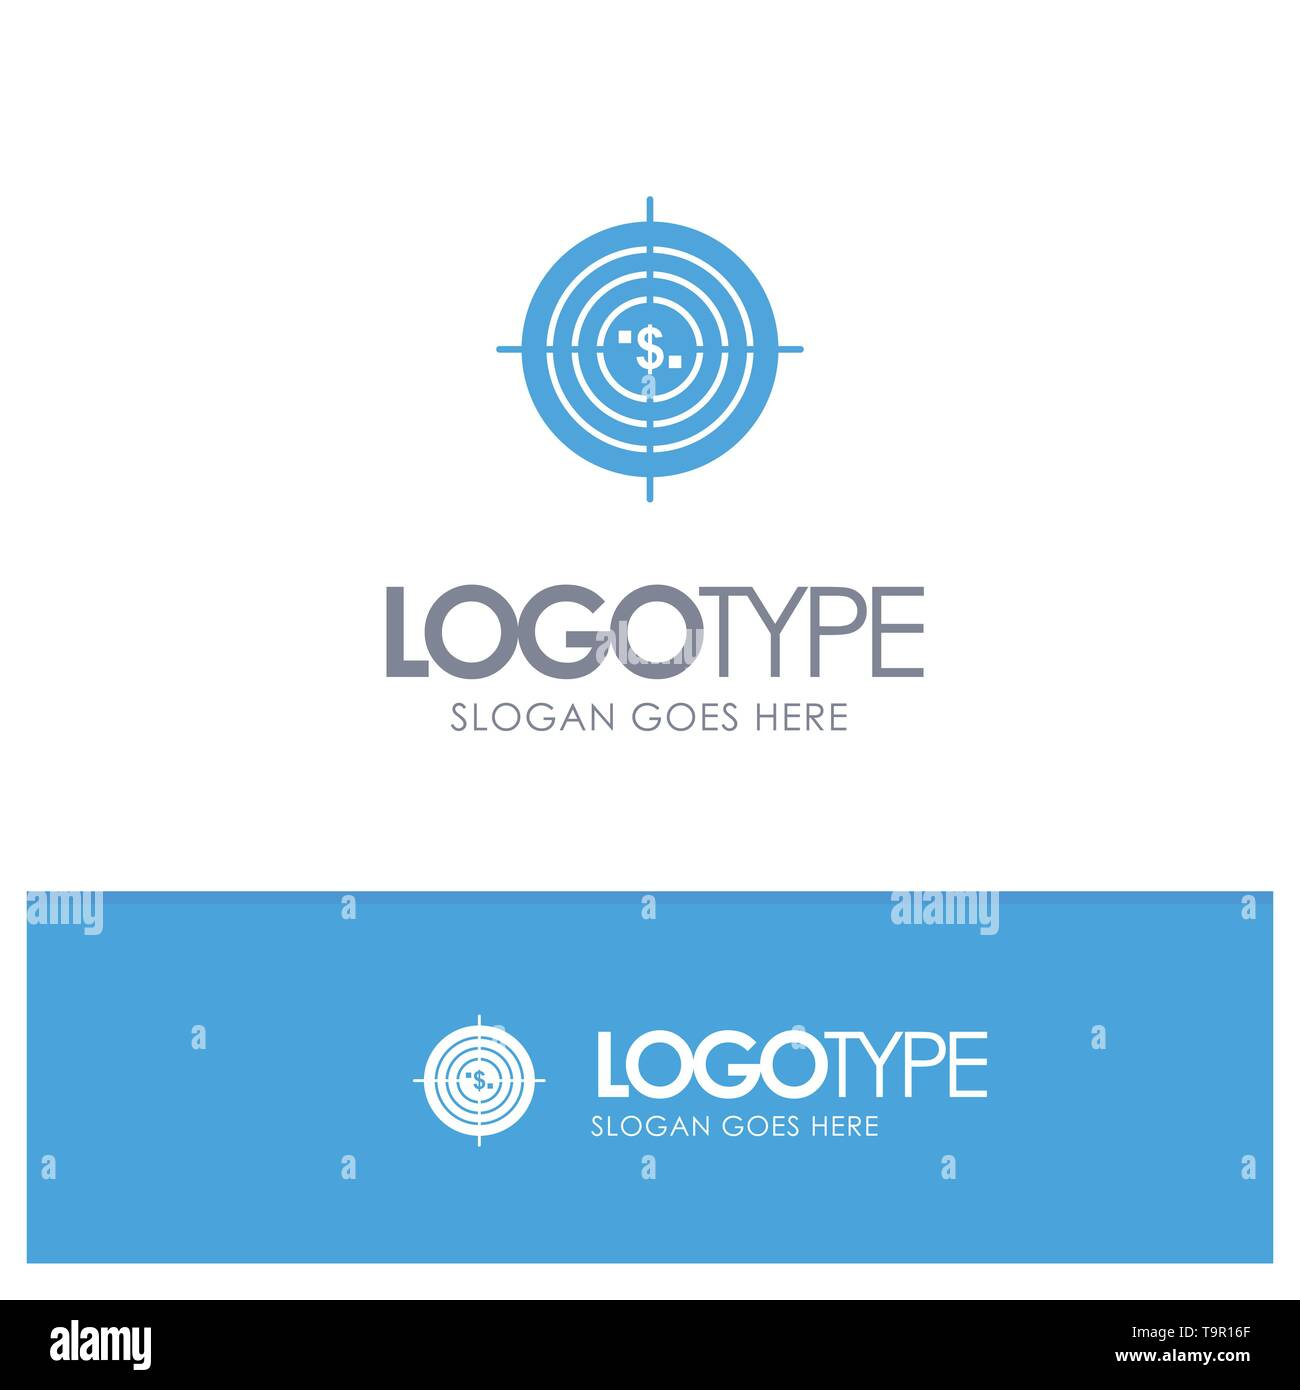 Target, Aim, Business, Cash, Financial, Funds, Hunting, Money Blue Solid Logo with place for tagline - Stock Image